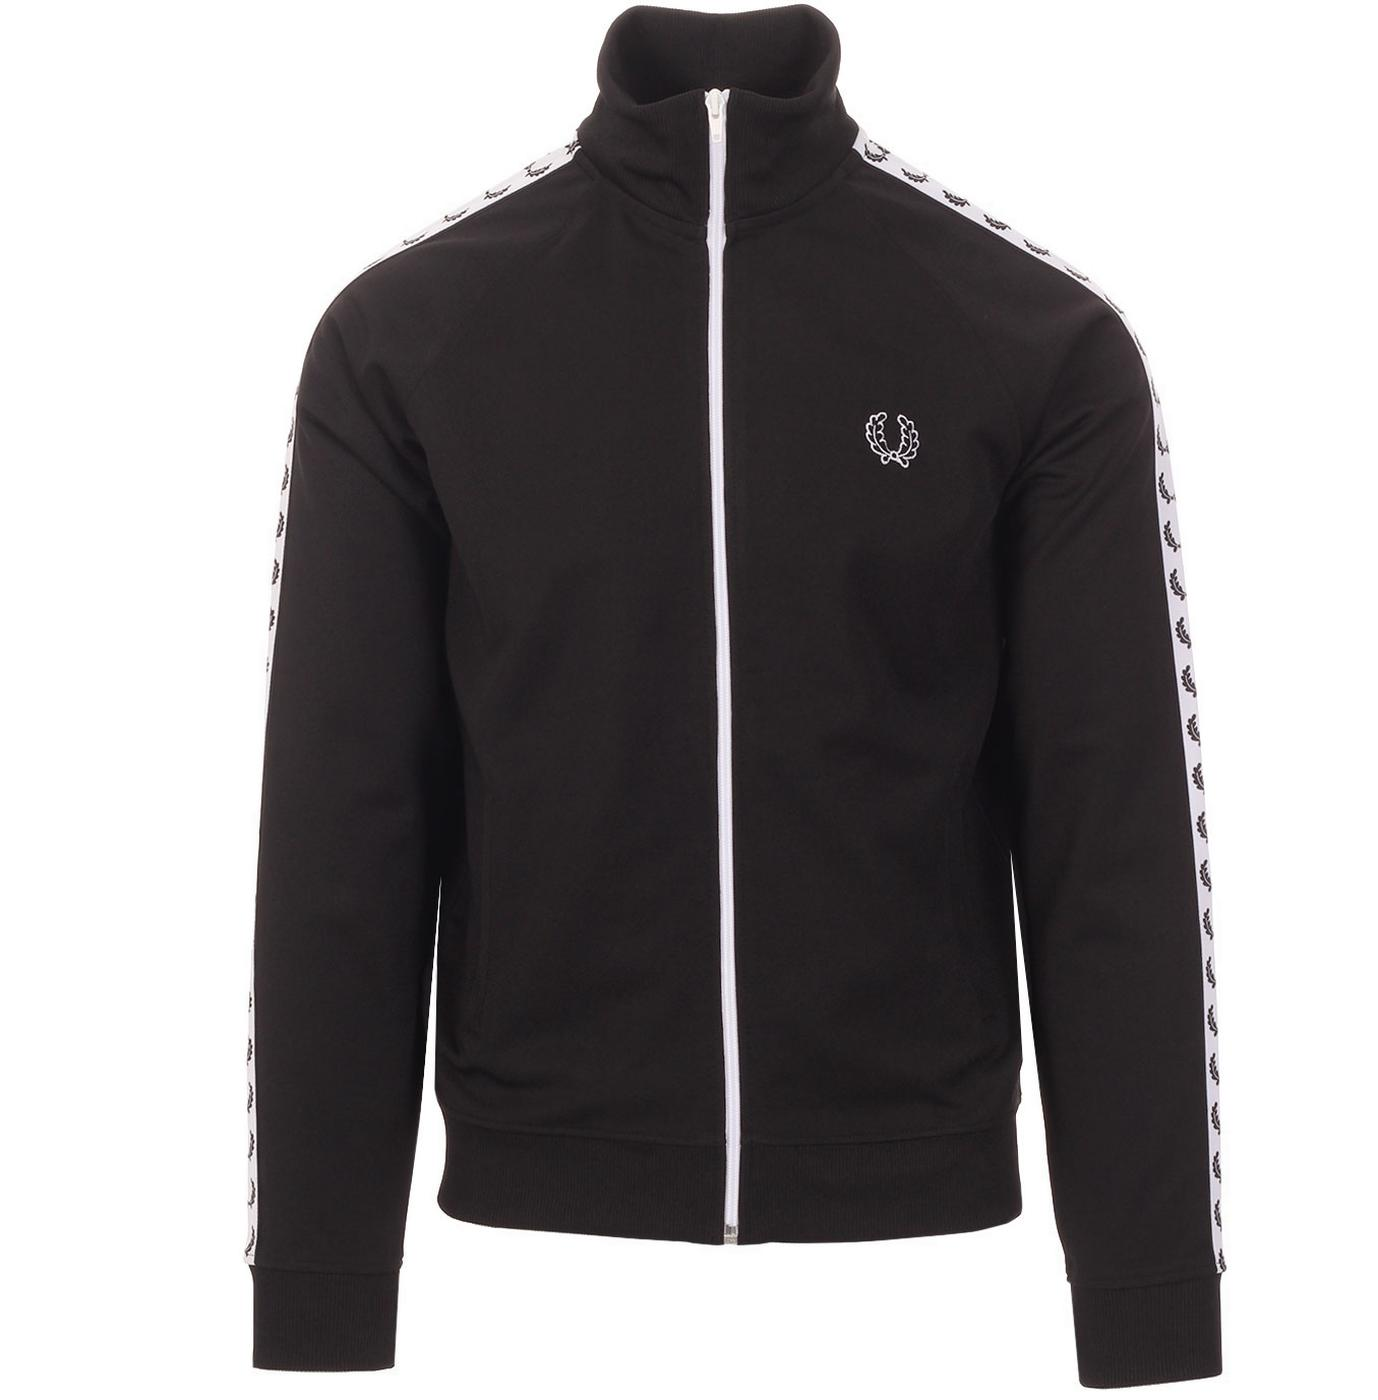 FRED PERRY Men's Laurel Wreath Tape Track Jacket B